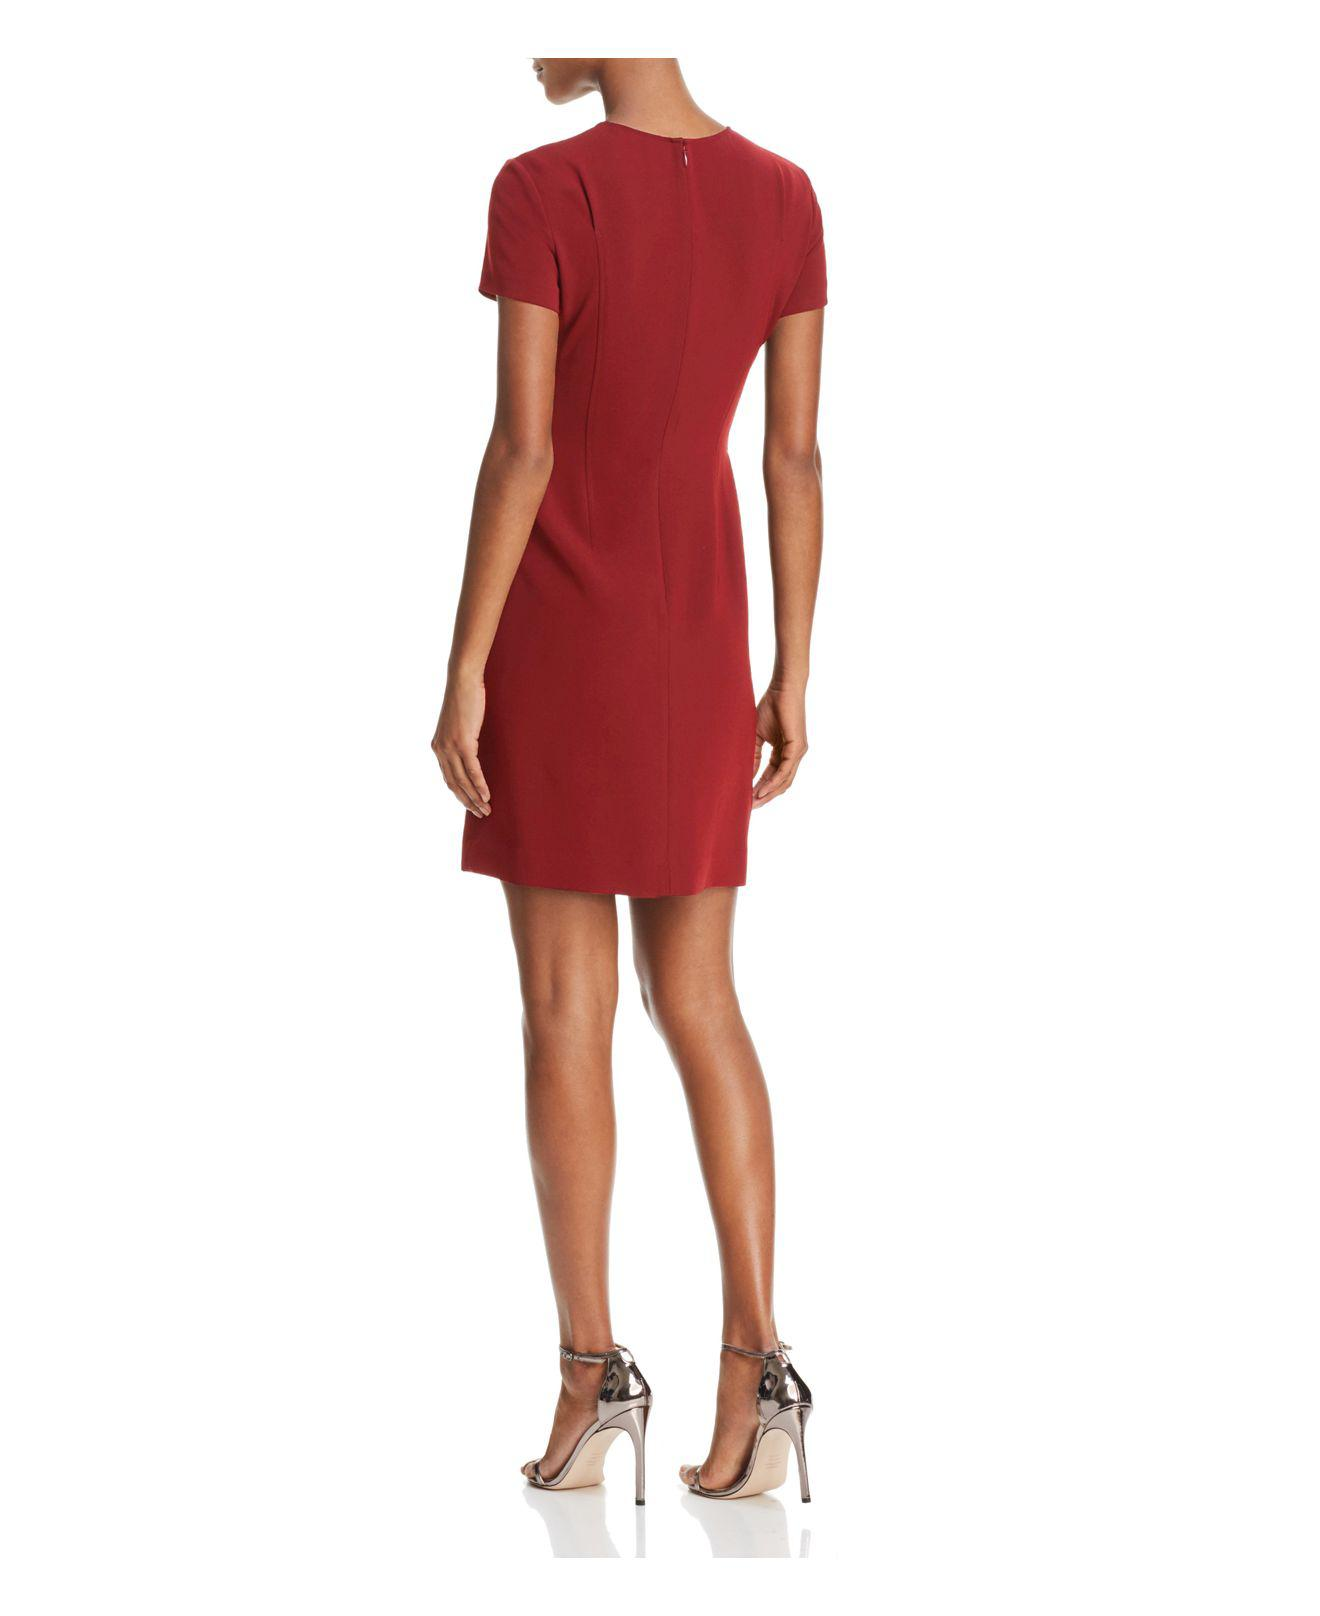 079e9e9df22 Gallery. Previously sold at  Bloomingdale s · Women s T Shirt Dresses